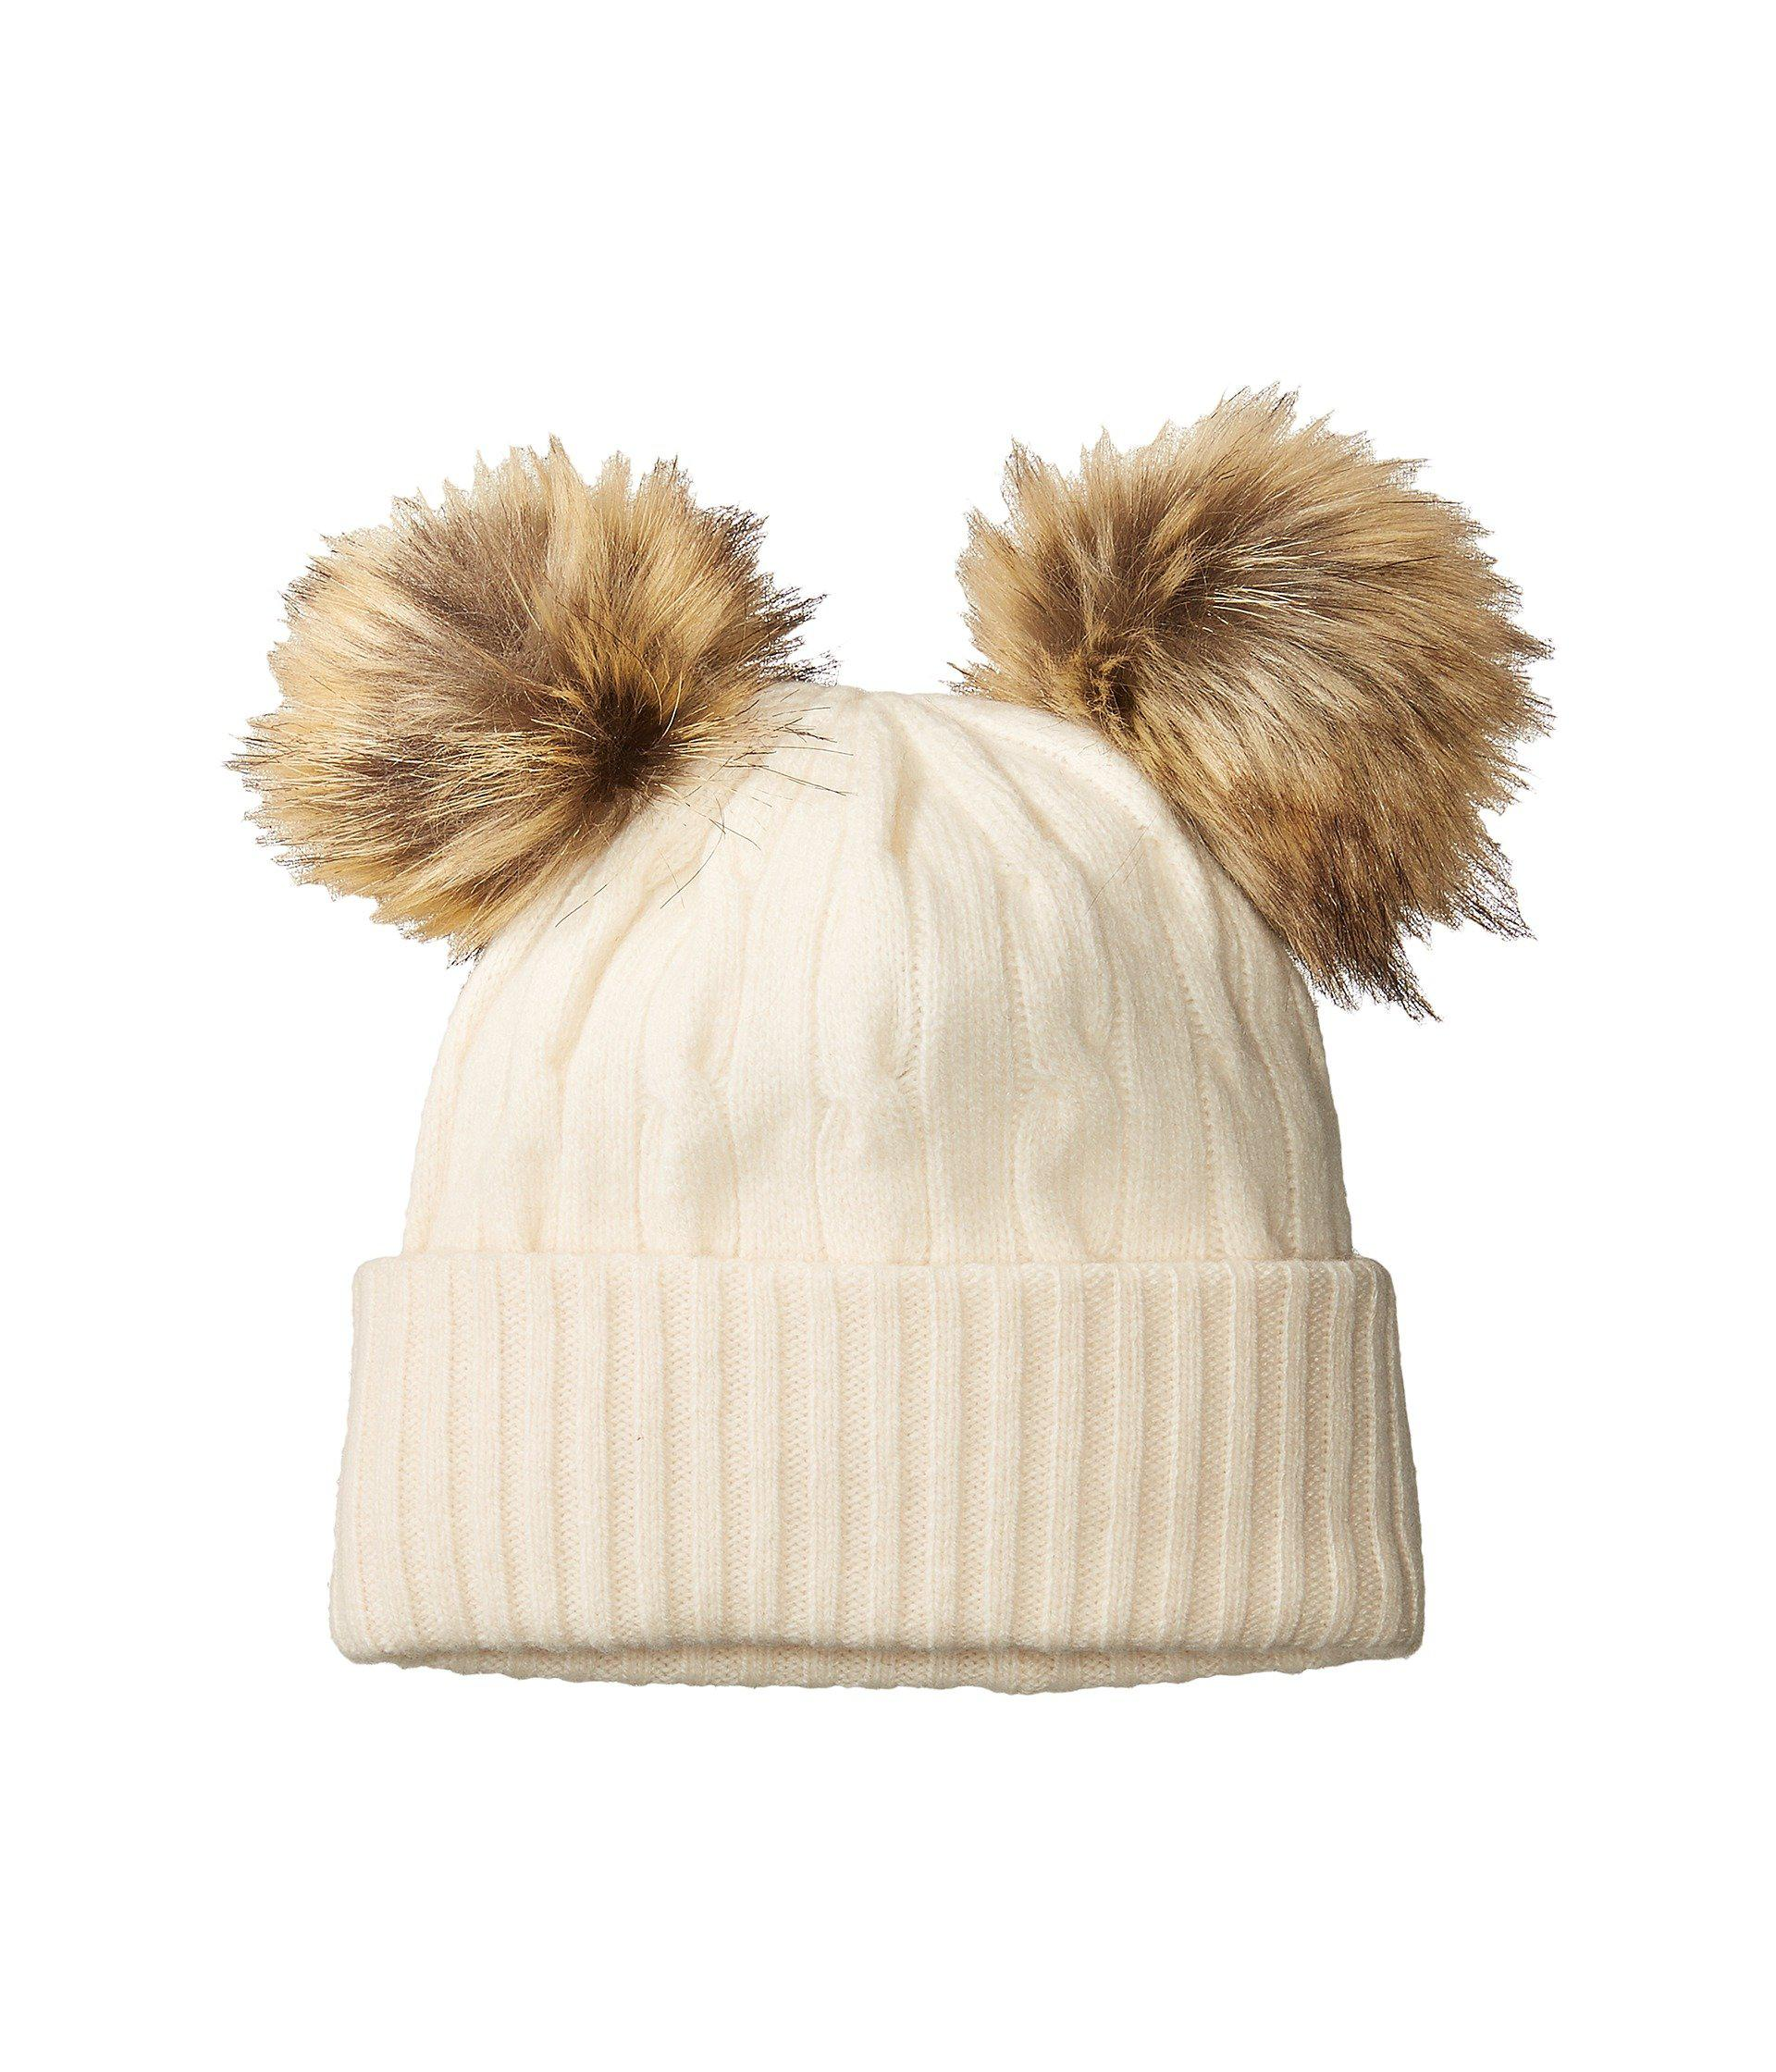 93d9fe4974a Lyst - Polo Ralph Lauren Double Pom Cashmere Blend Hat in Natural